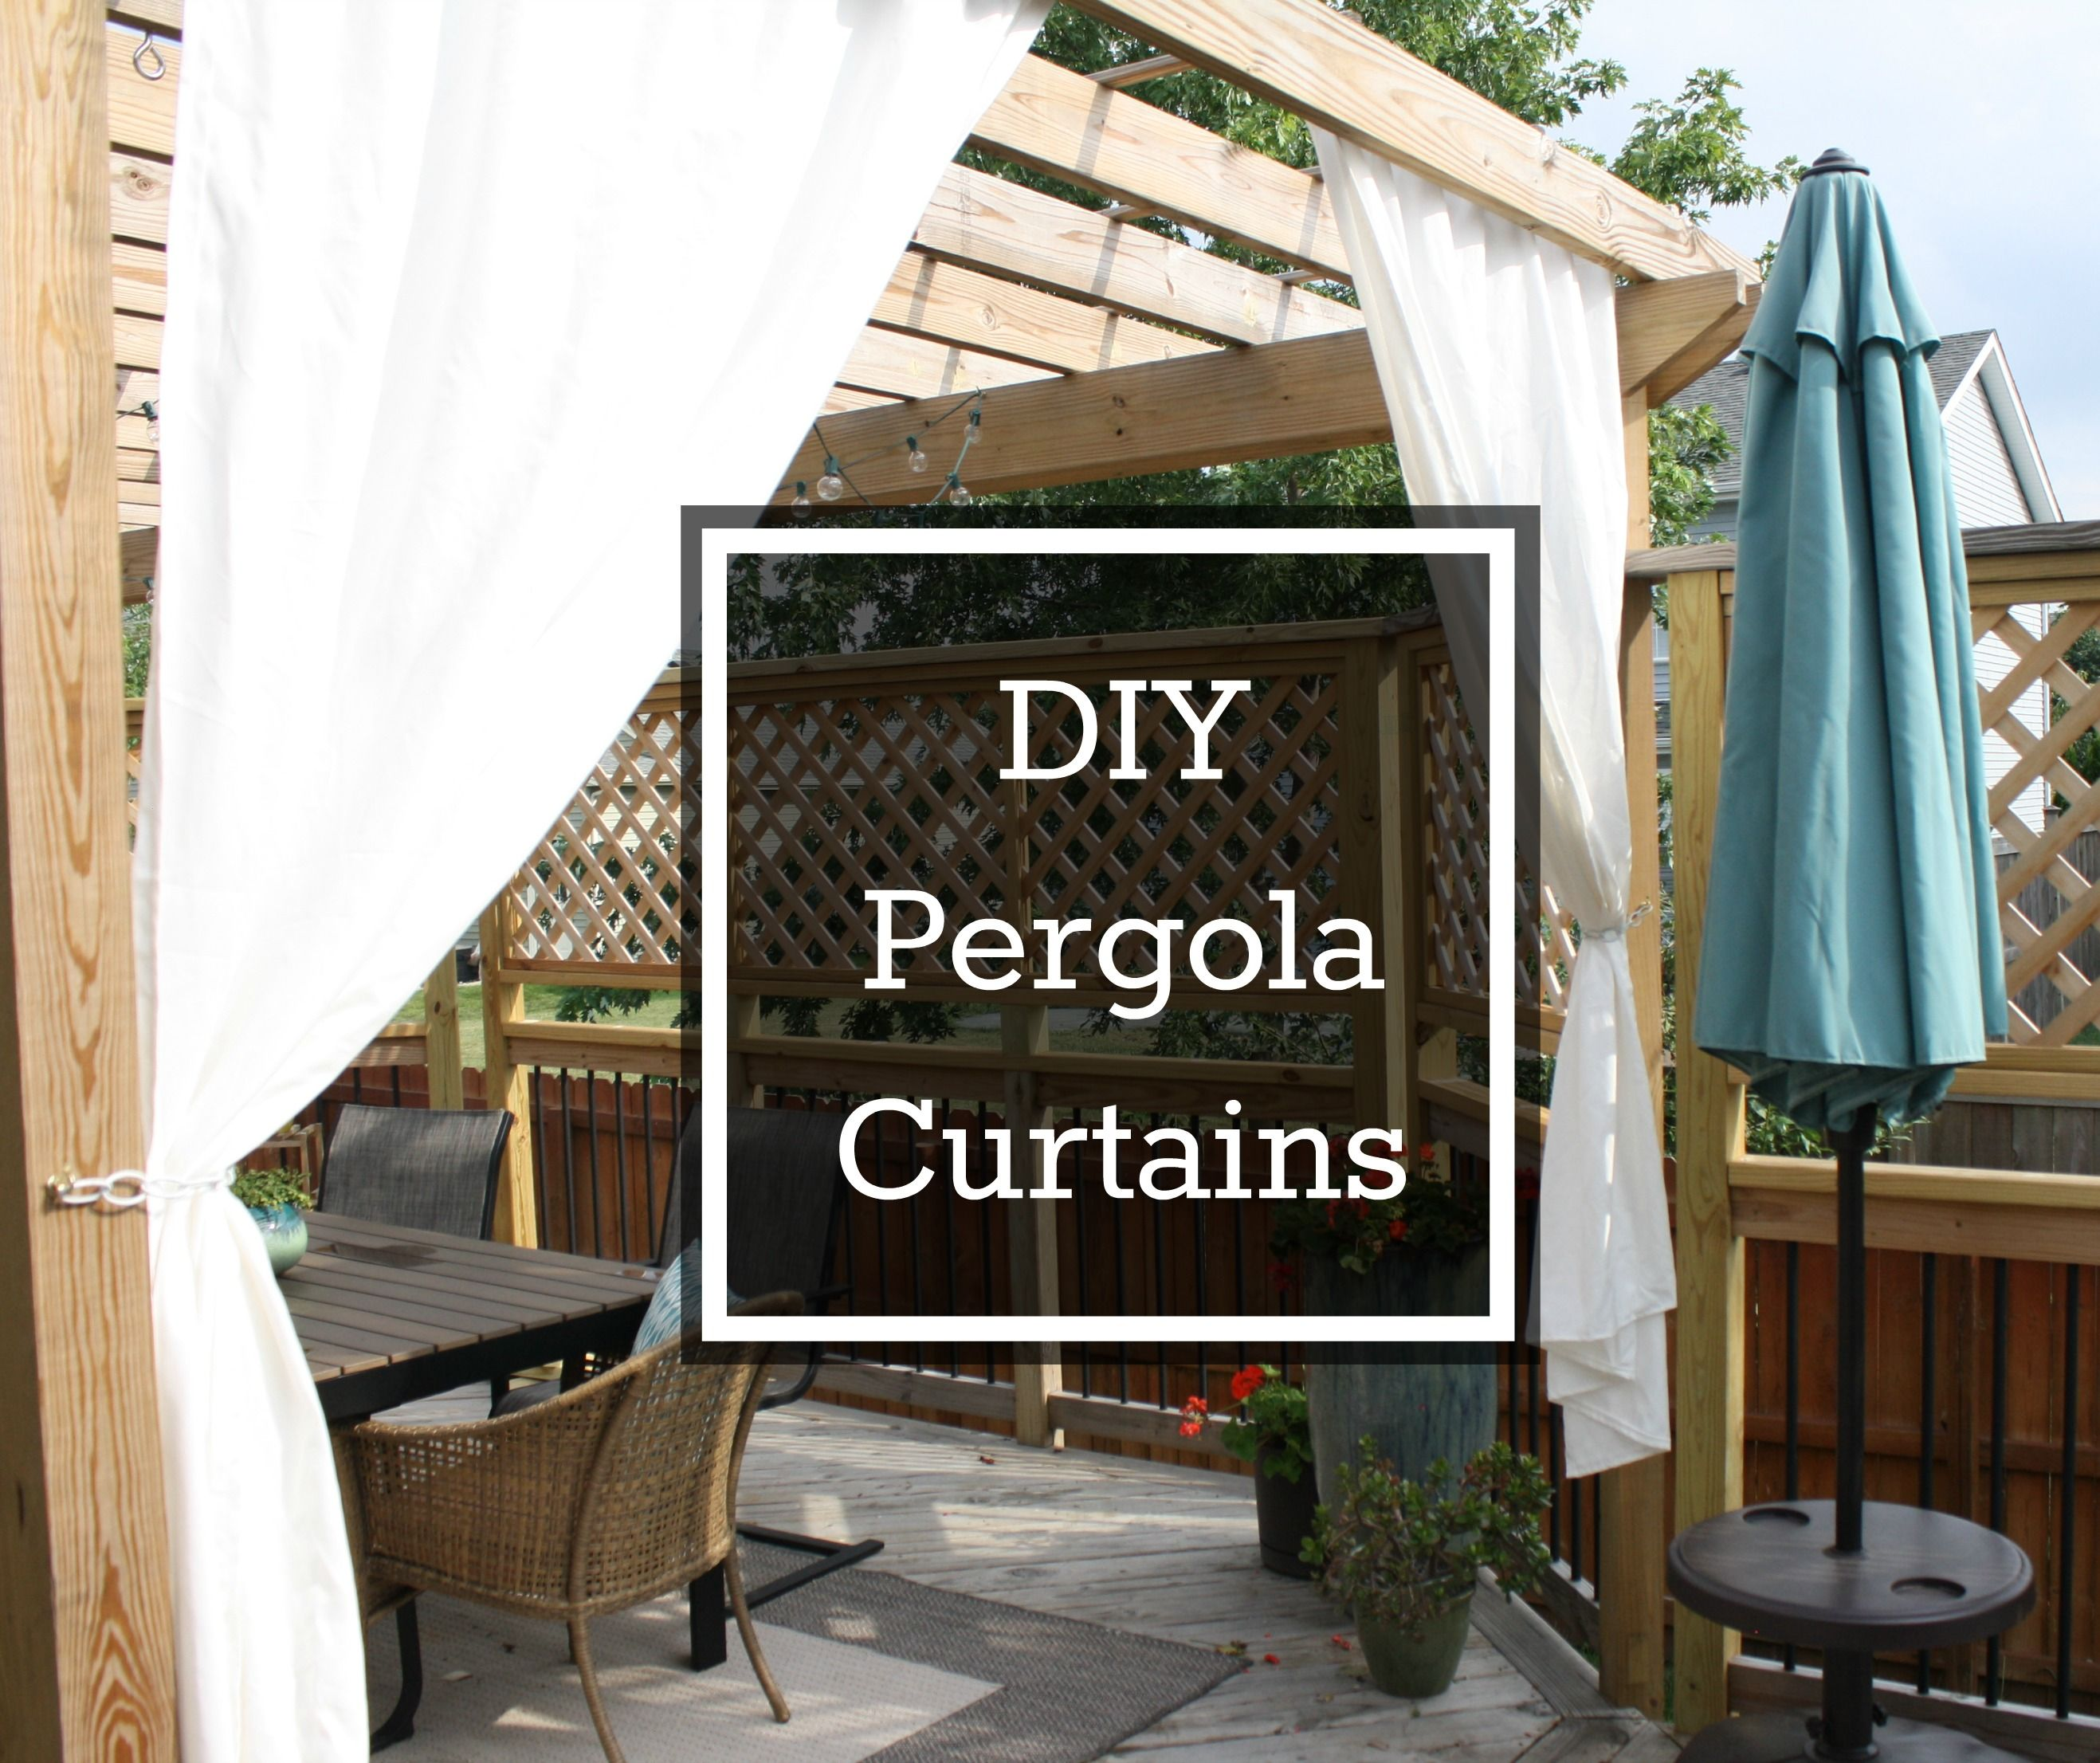 diy pergola curtains diy decor pinterest pergola curtains